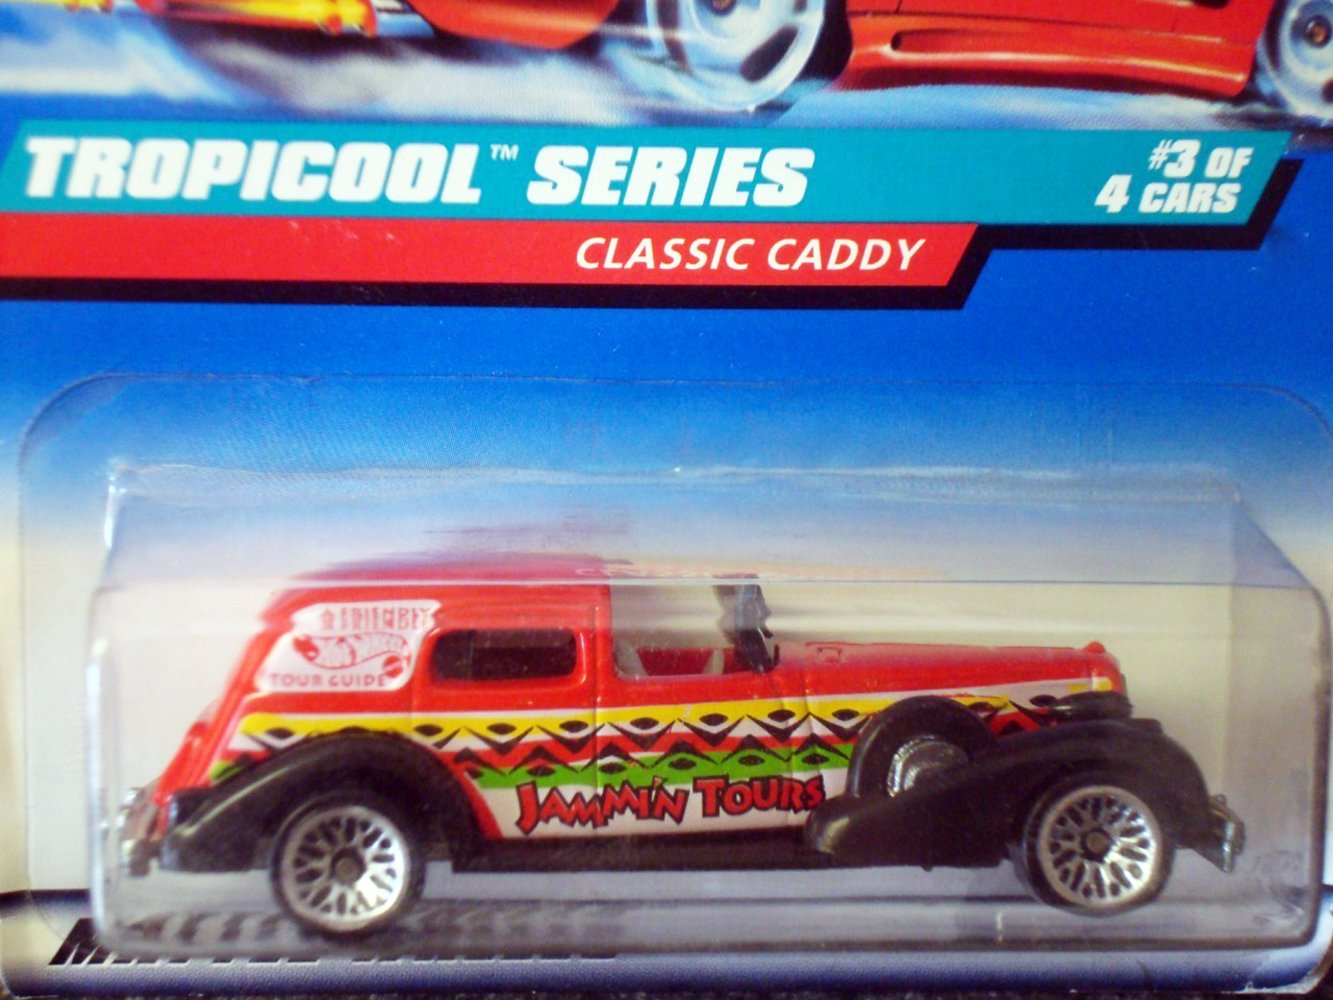 Hot Wheels Tropicool Series #3 Classic Caddy 1:64 Scale Collectible Die Cast Car Model #695